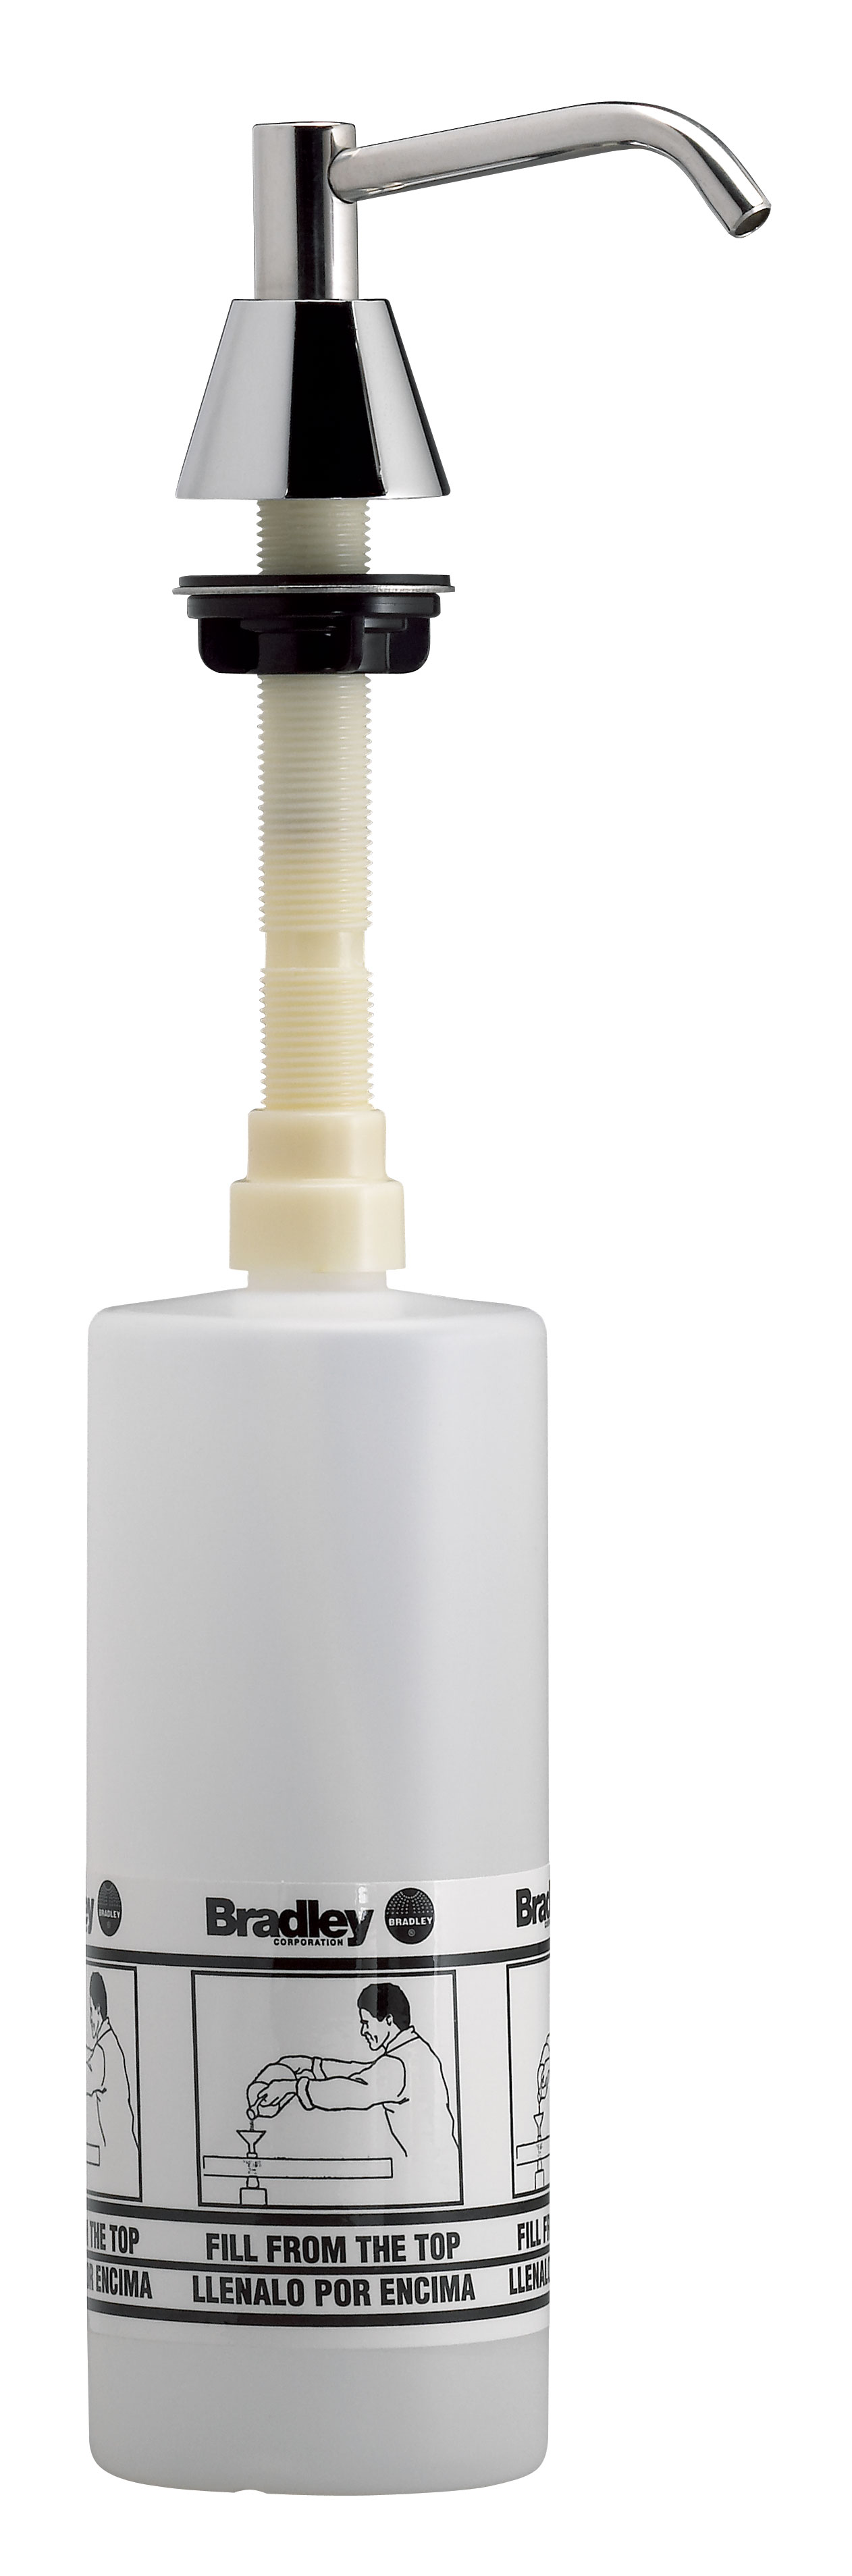 "Bradley 6324-68 Spout Pump Liquid Soap Dispenser (4"" Spout, 32oz cap.)"